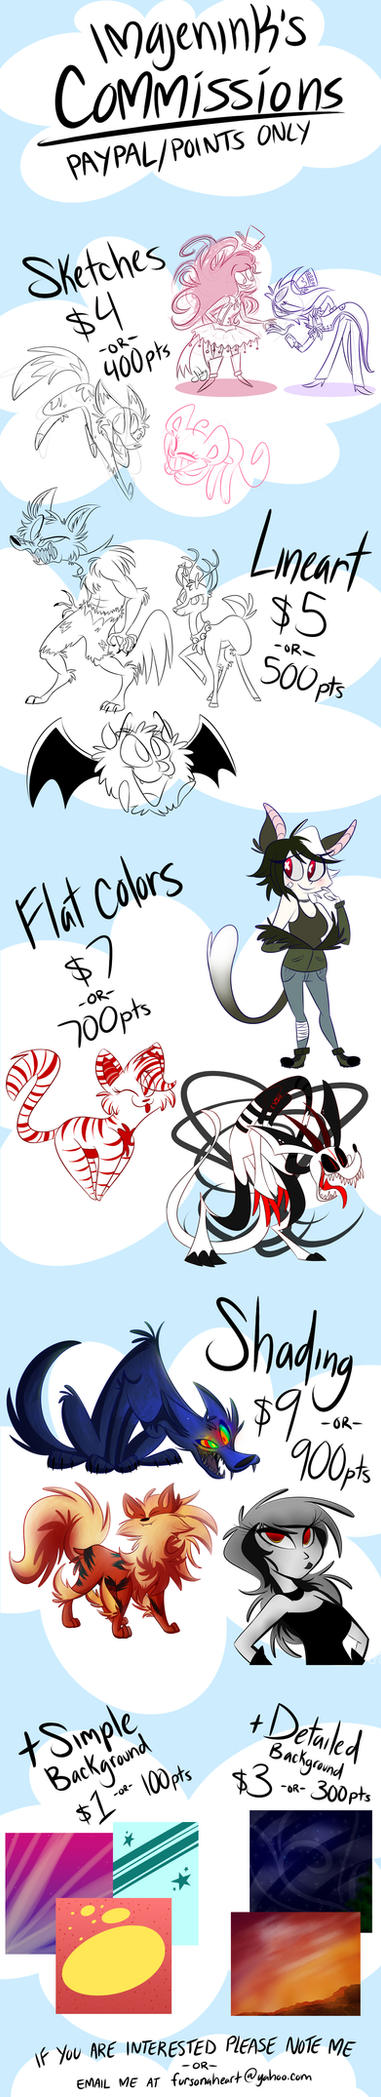 Commissions INFO (OPEN) by imajenink